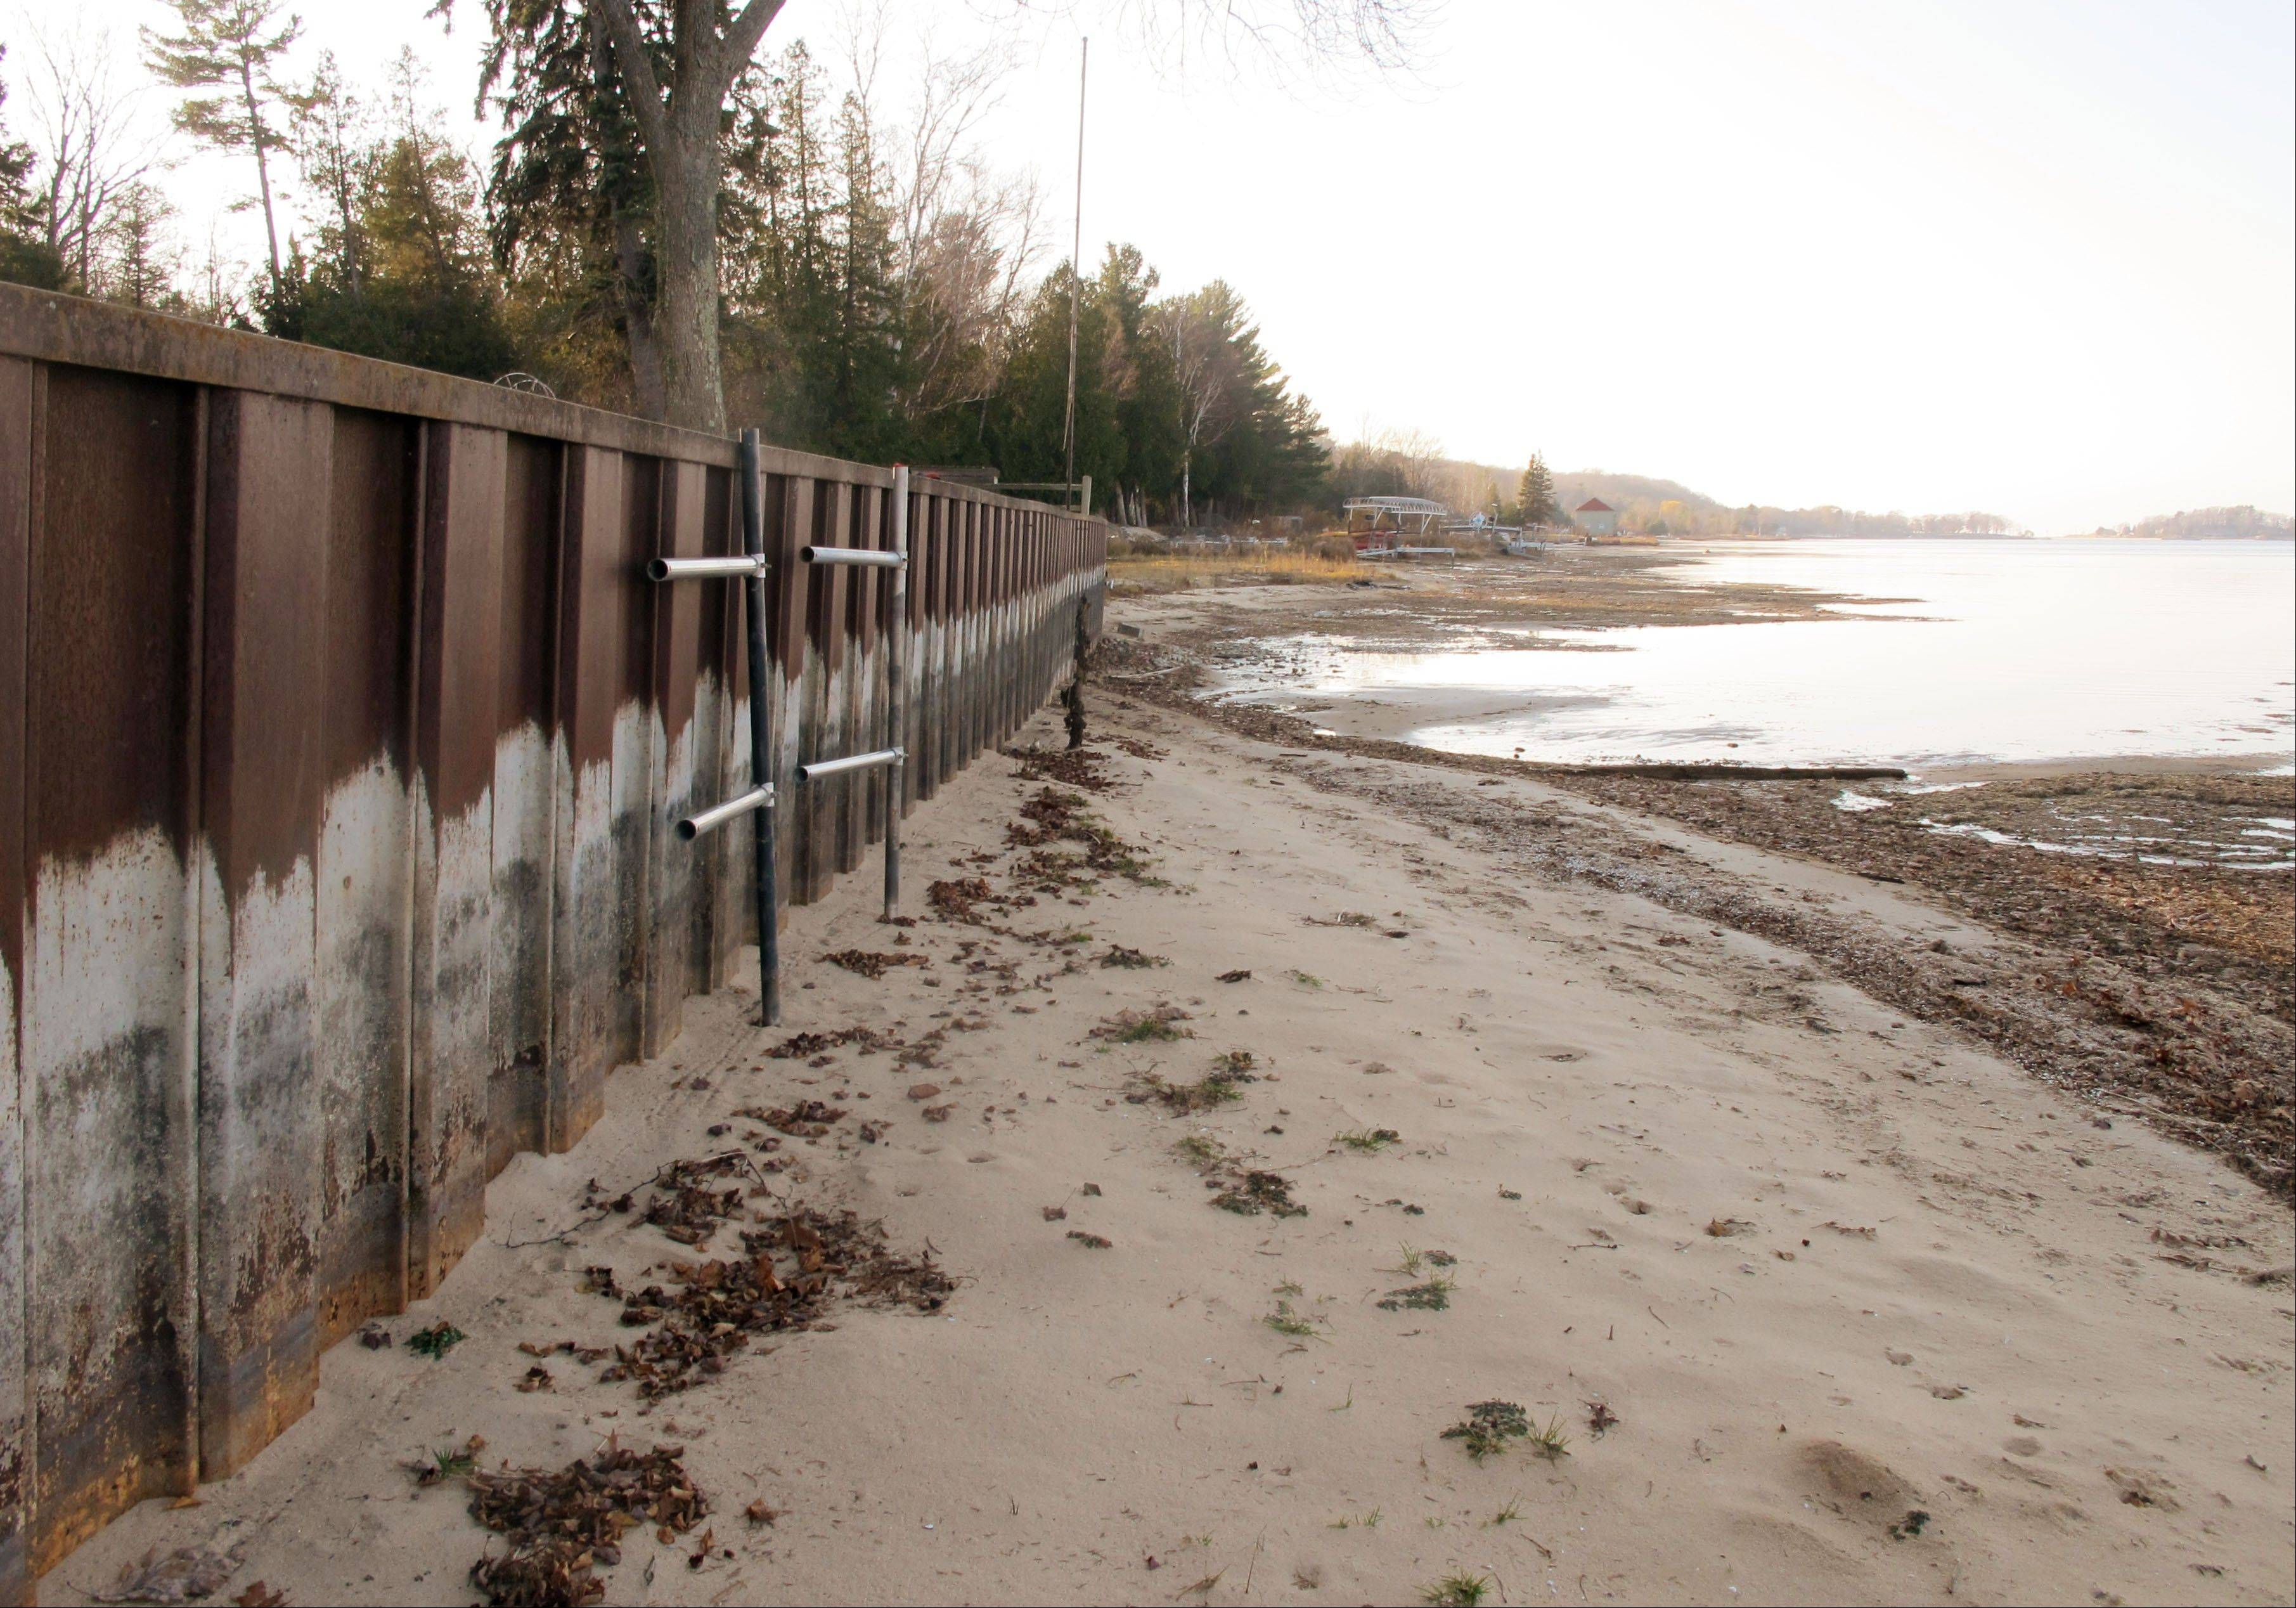 The white streaks on a steel breakwall show the normal water level on Portage Lake at Onekama, Mich., which is connected by a channel to Lake Michigan. Levels across much of the Great Lakes are abnormally low, causing problems for small harbor towns that rely on boating and water tourism.